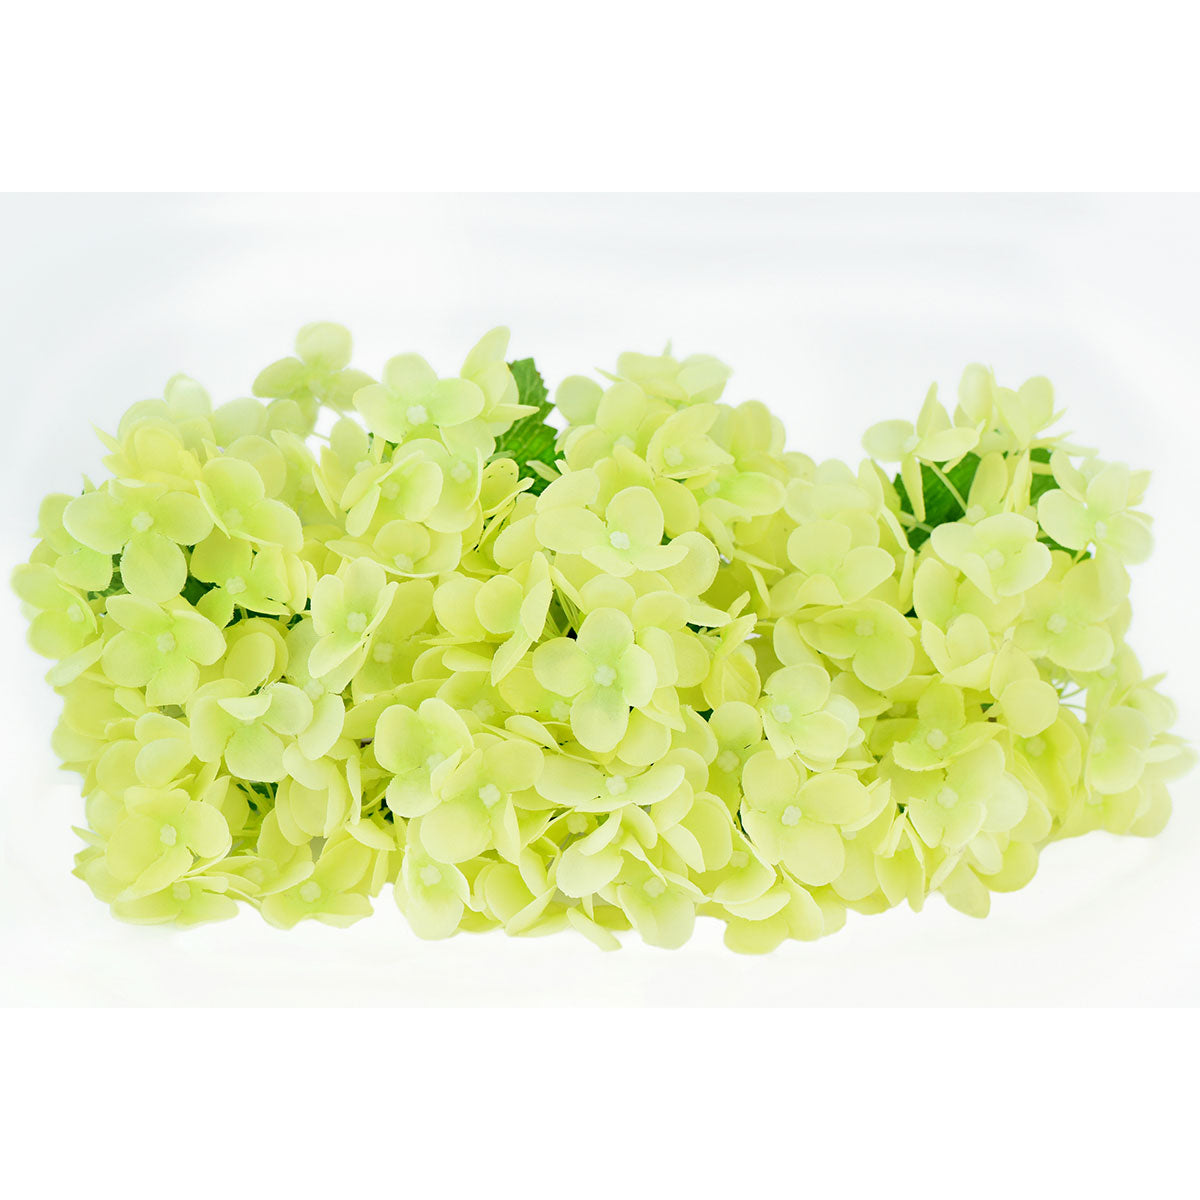 FiveSeasonStuff 15 Stems of 32cm (12.6'') Mini Artificial Hydrangea Flowers(Pale Green), Bouquet, Floral Arrangement, Perfect for Wedding, Bridal, Party, Home, Shop, Office Décor, DIY Floral Arrangement Decoration